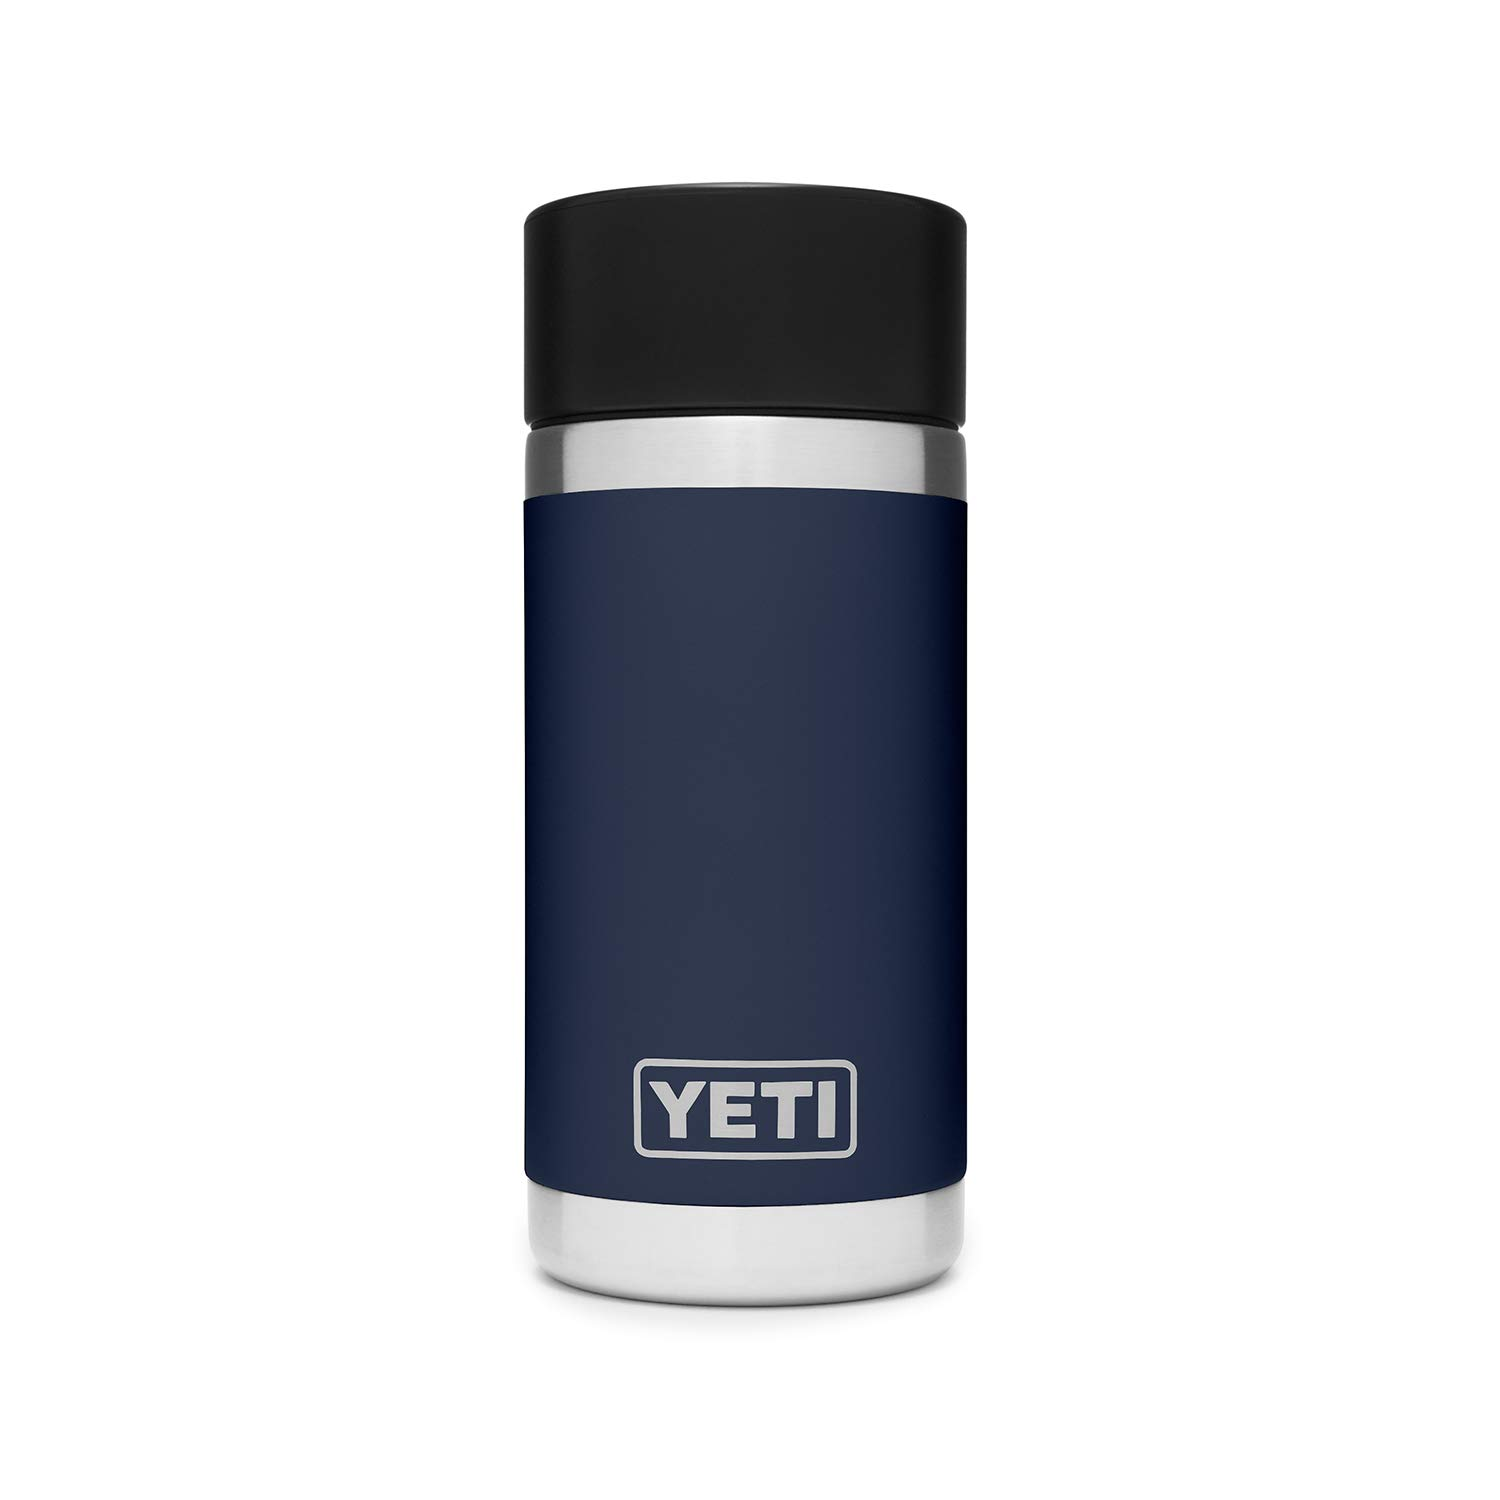 YETI Rambler 12 oz Stainless Steel Vacuum Insulated Bottle with Hot Shot Cap, Navy